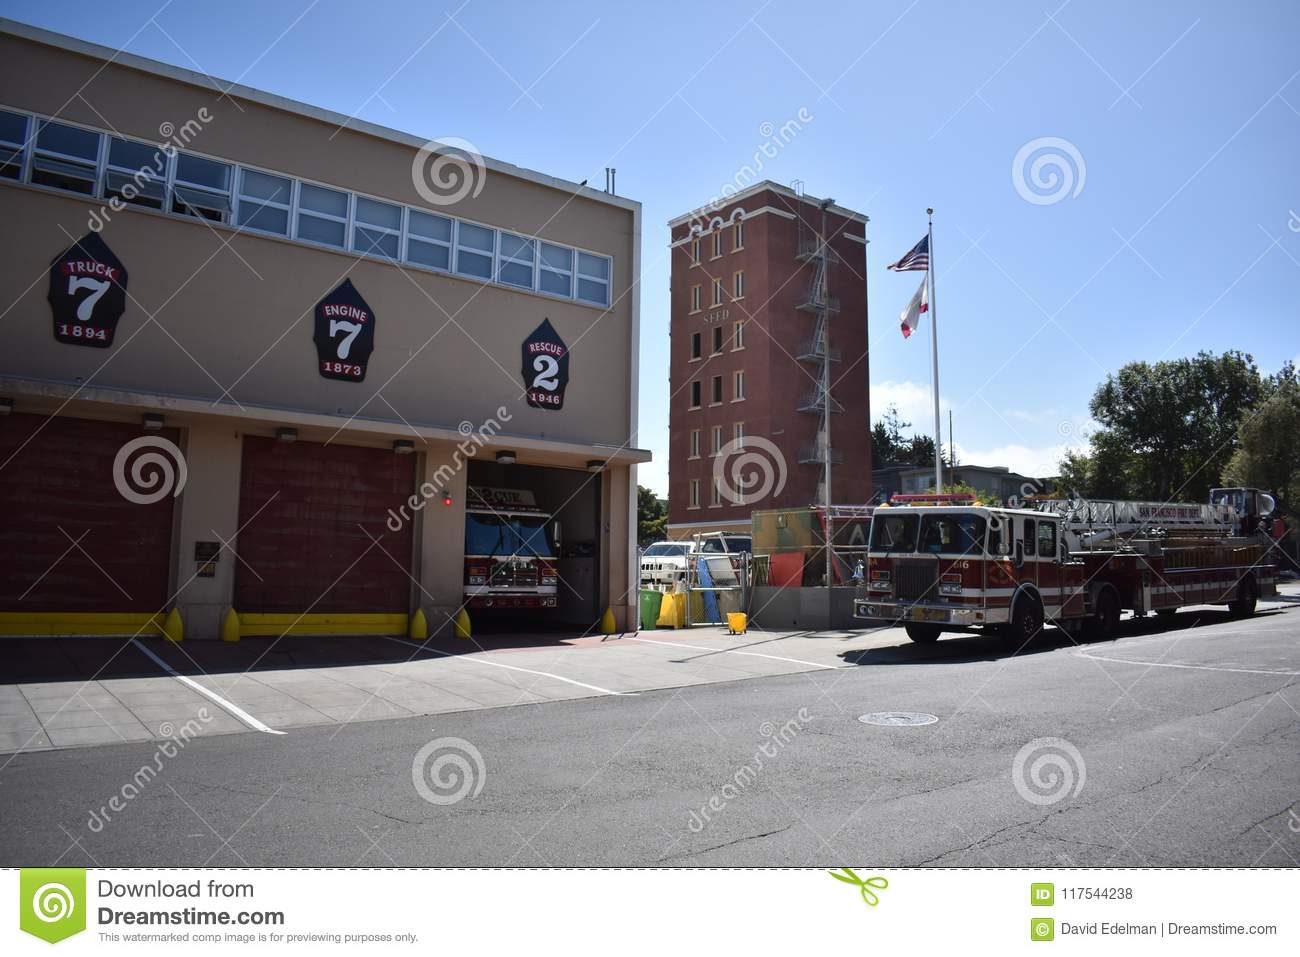 San Francisco Fire Department station 7 and training center, 3.